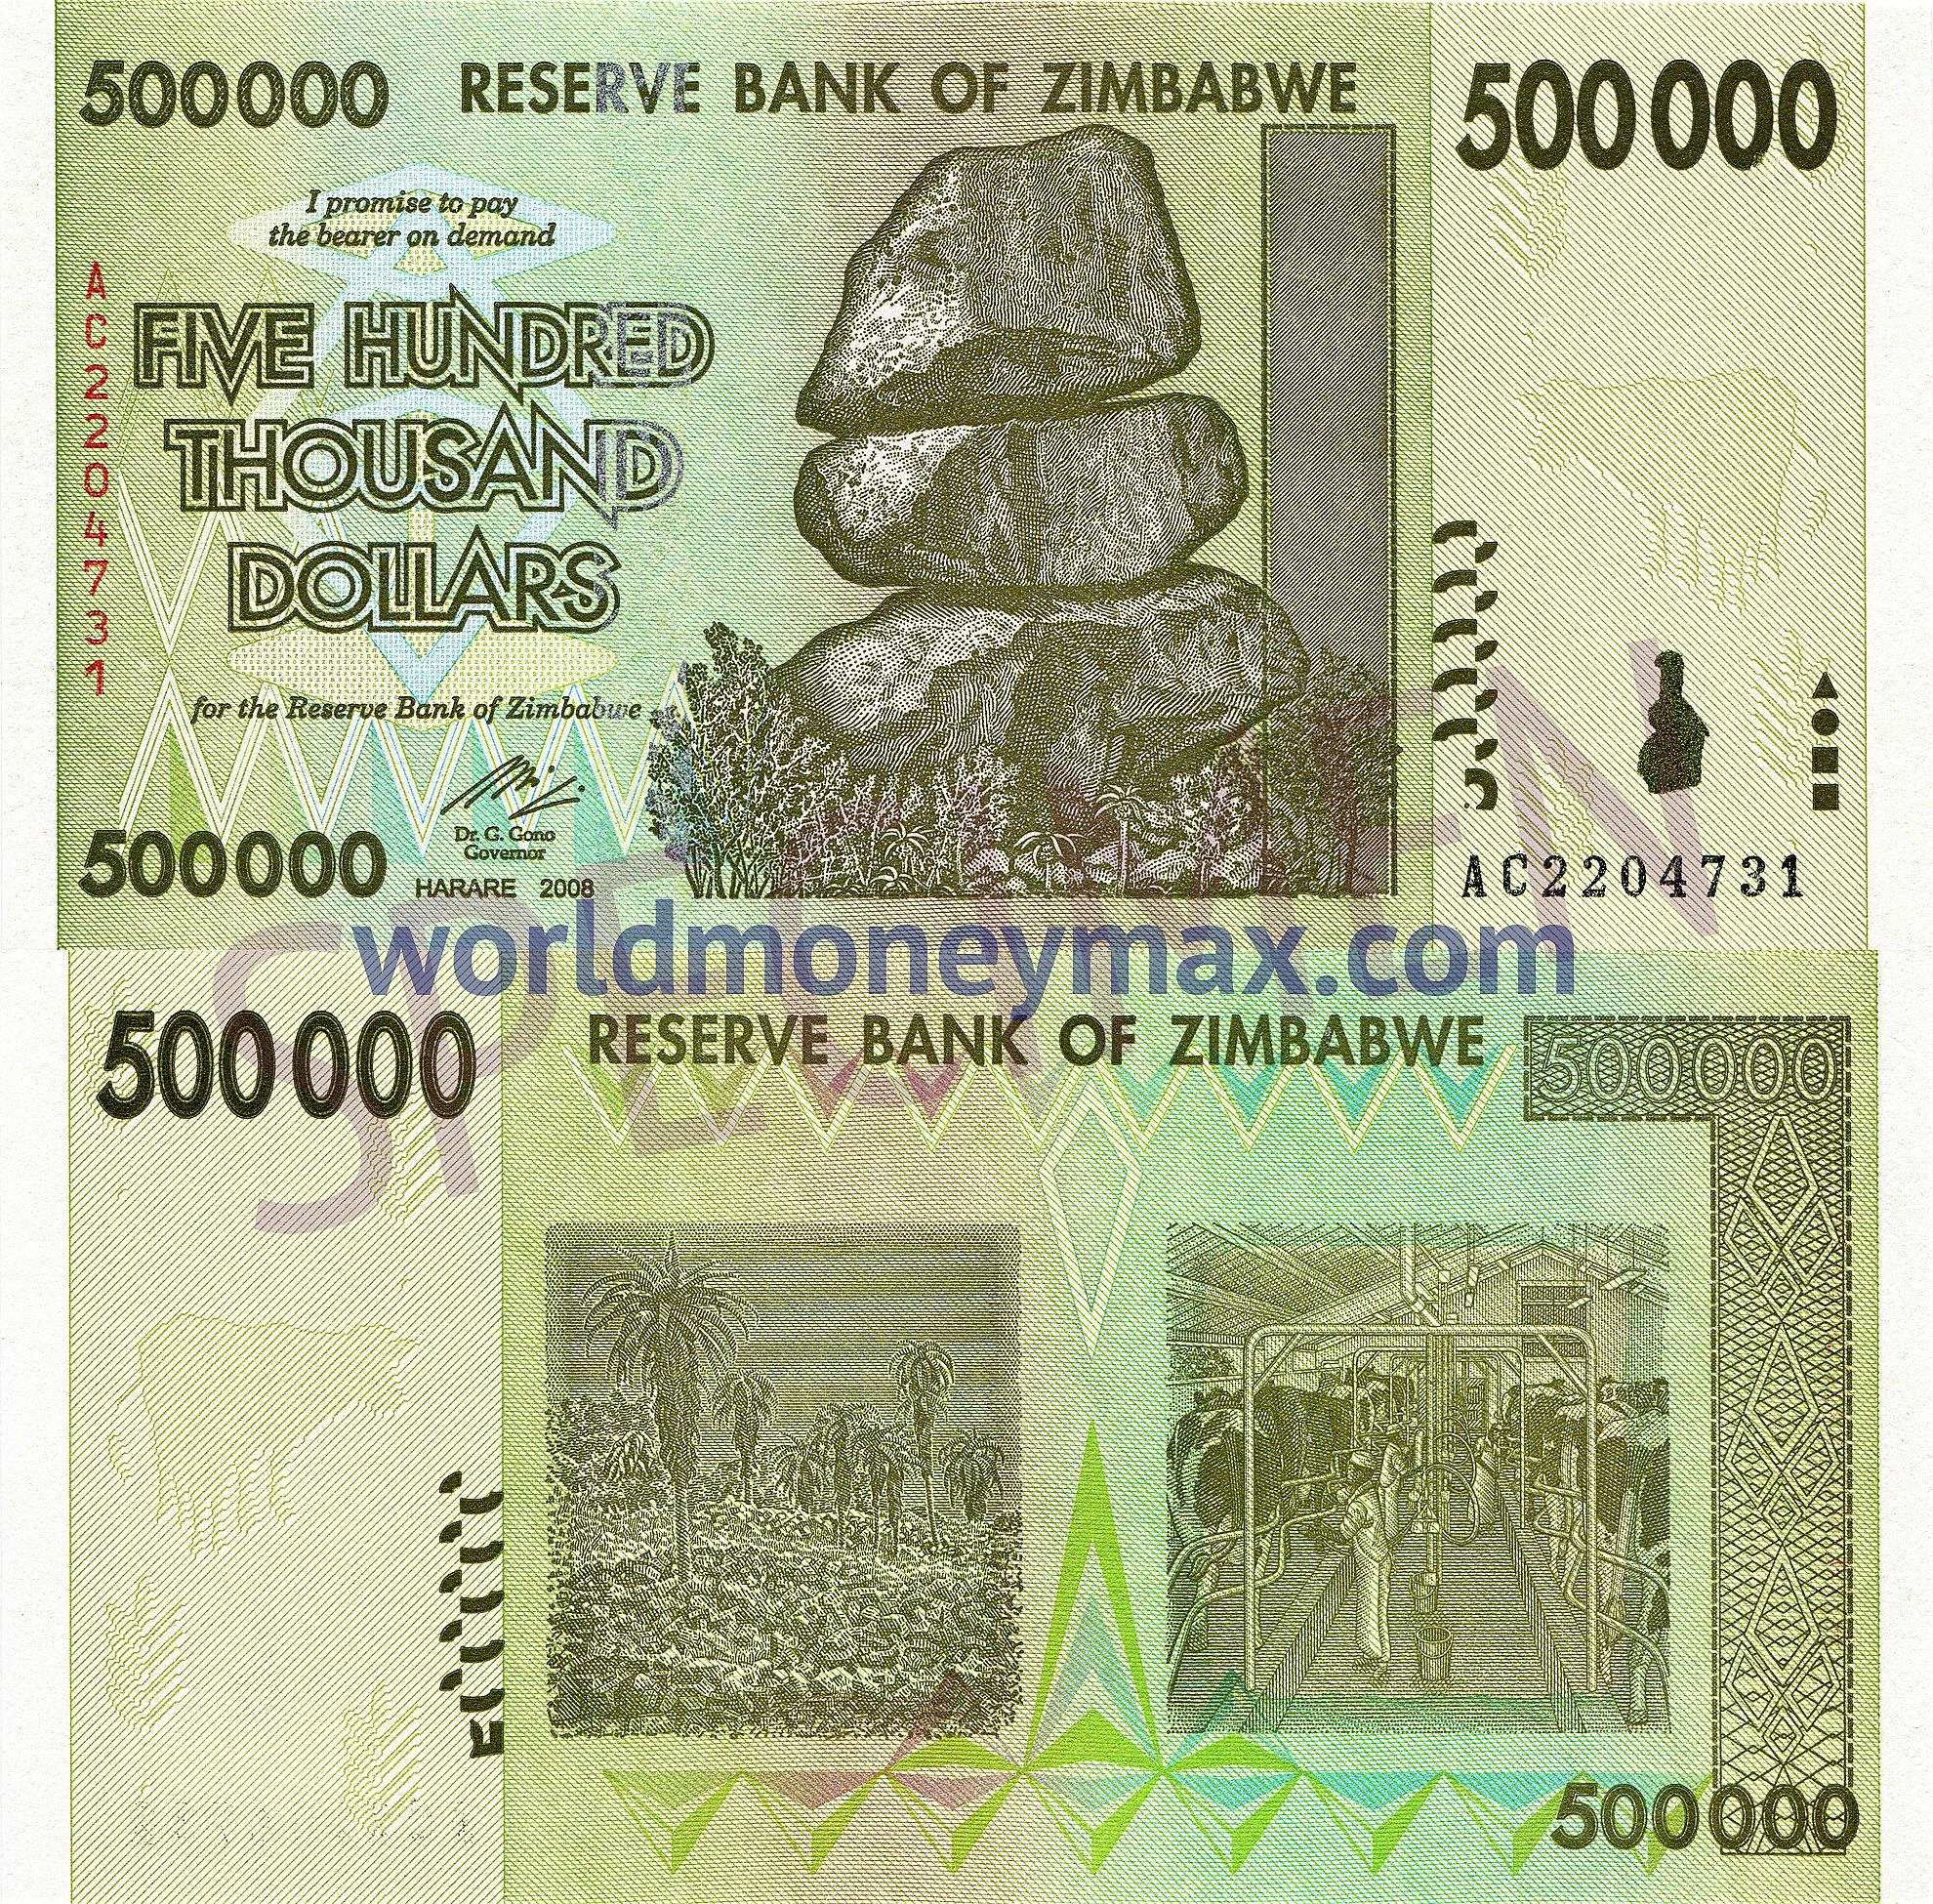 Zimbabwe 500000 dollar 2008 banknote for 200 thousand dollar homes